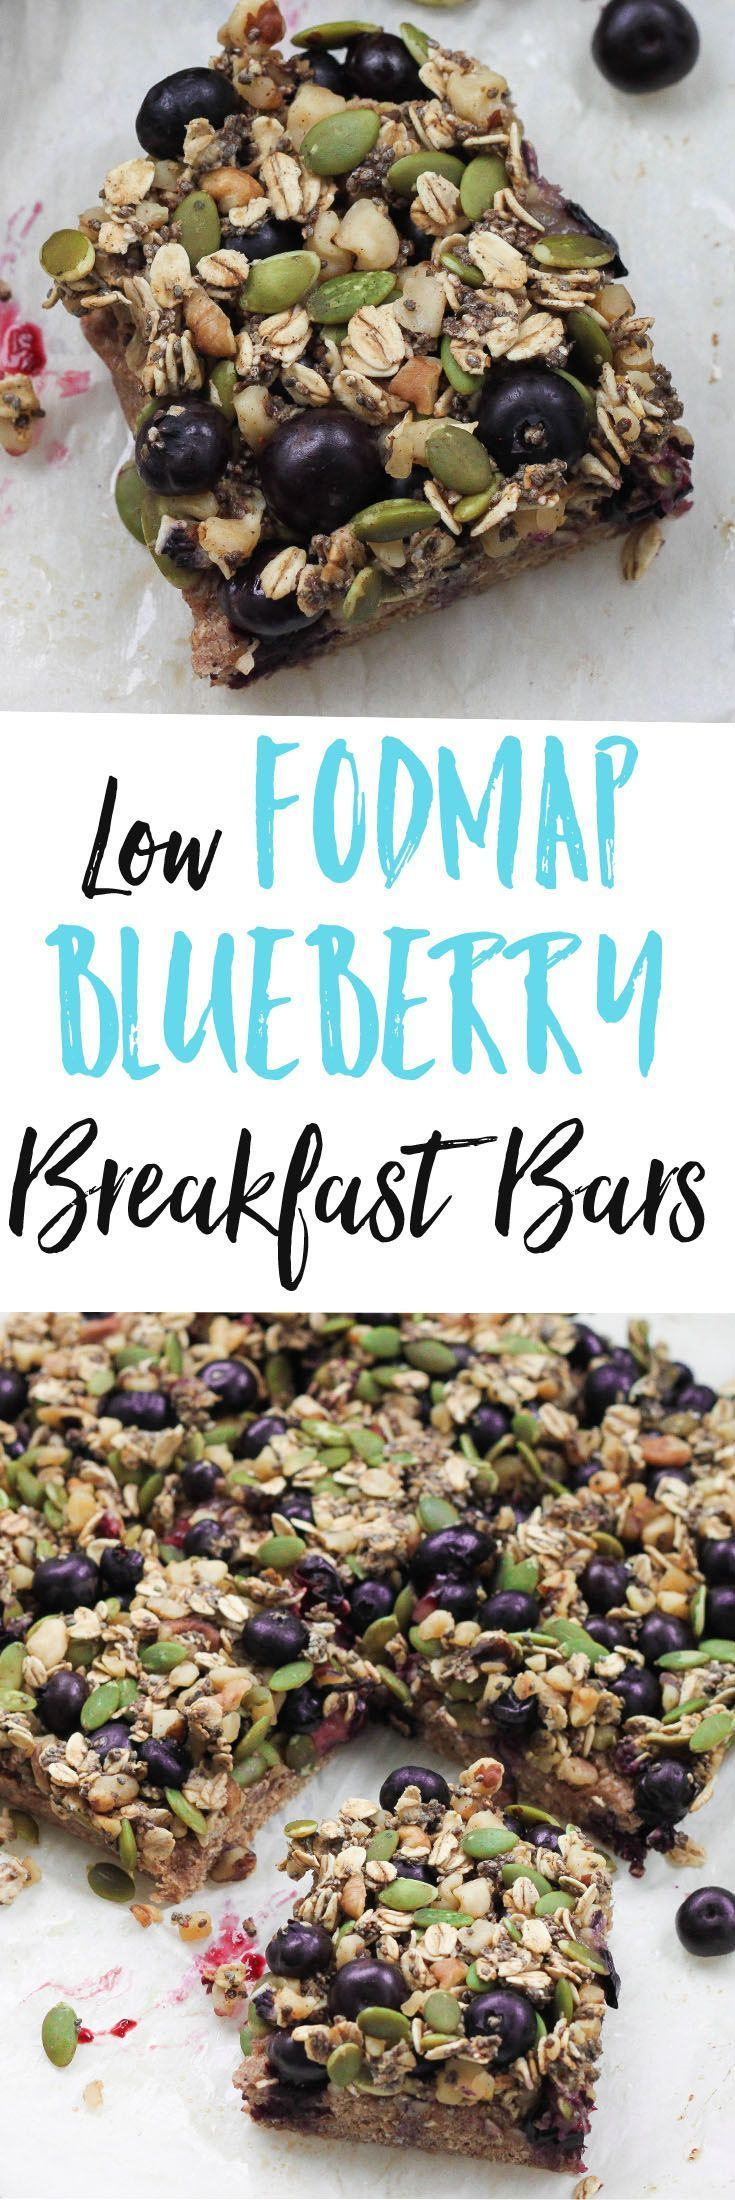 Your IBS elimination phase is easy with these Low FODMAP Blueberry Breakfast Bars, which can also easily be made vegan and gluten free. via @euphorianutr